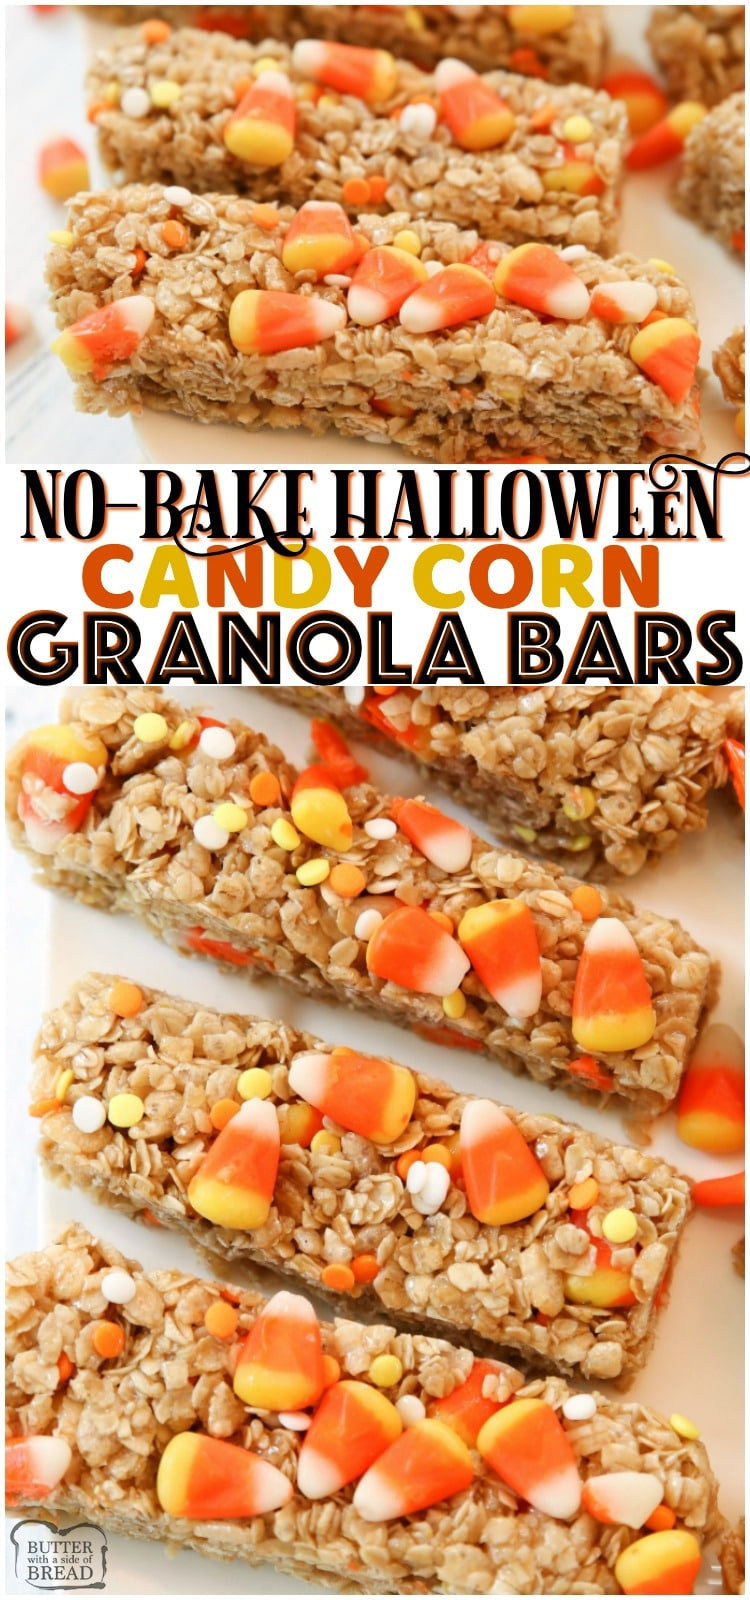 Quick & Easy Candy Corn Granola Bar recipe made in minutes. Perfect Halloween snack! Simple ingredients combined to make a tasty homemade granola bars.